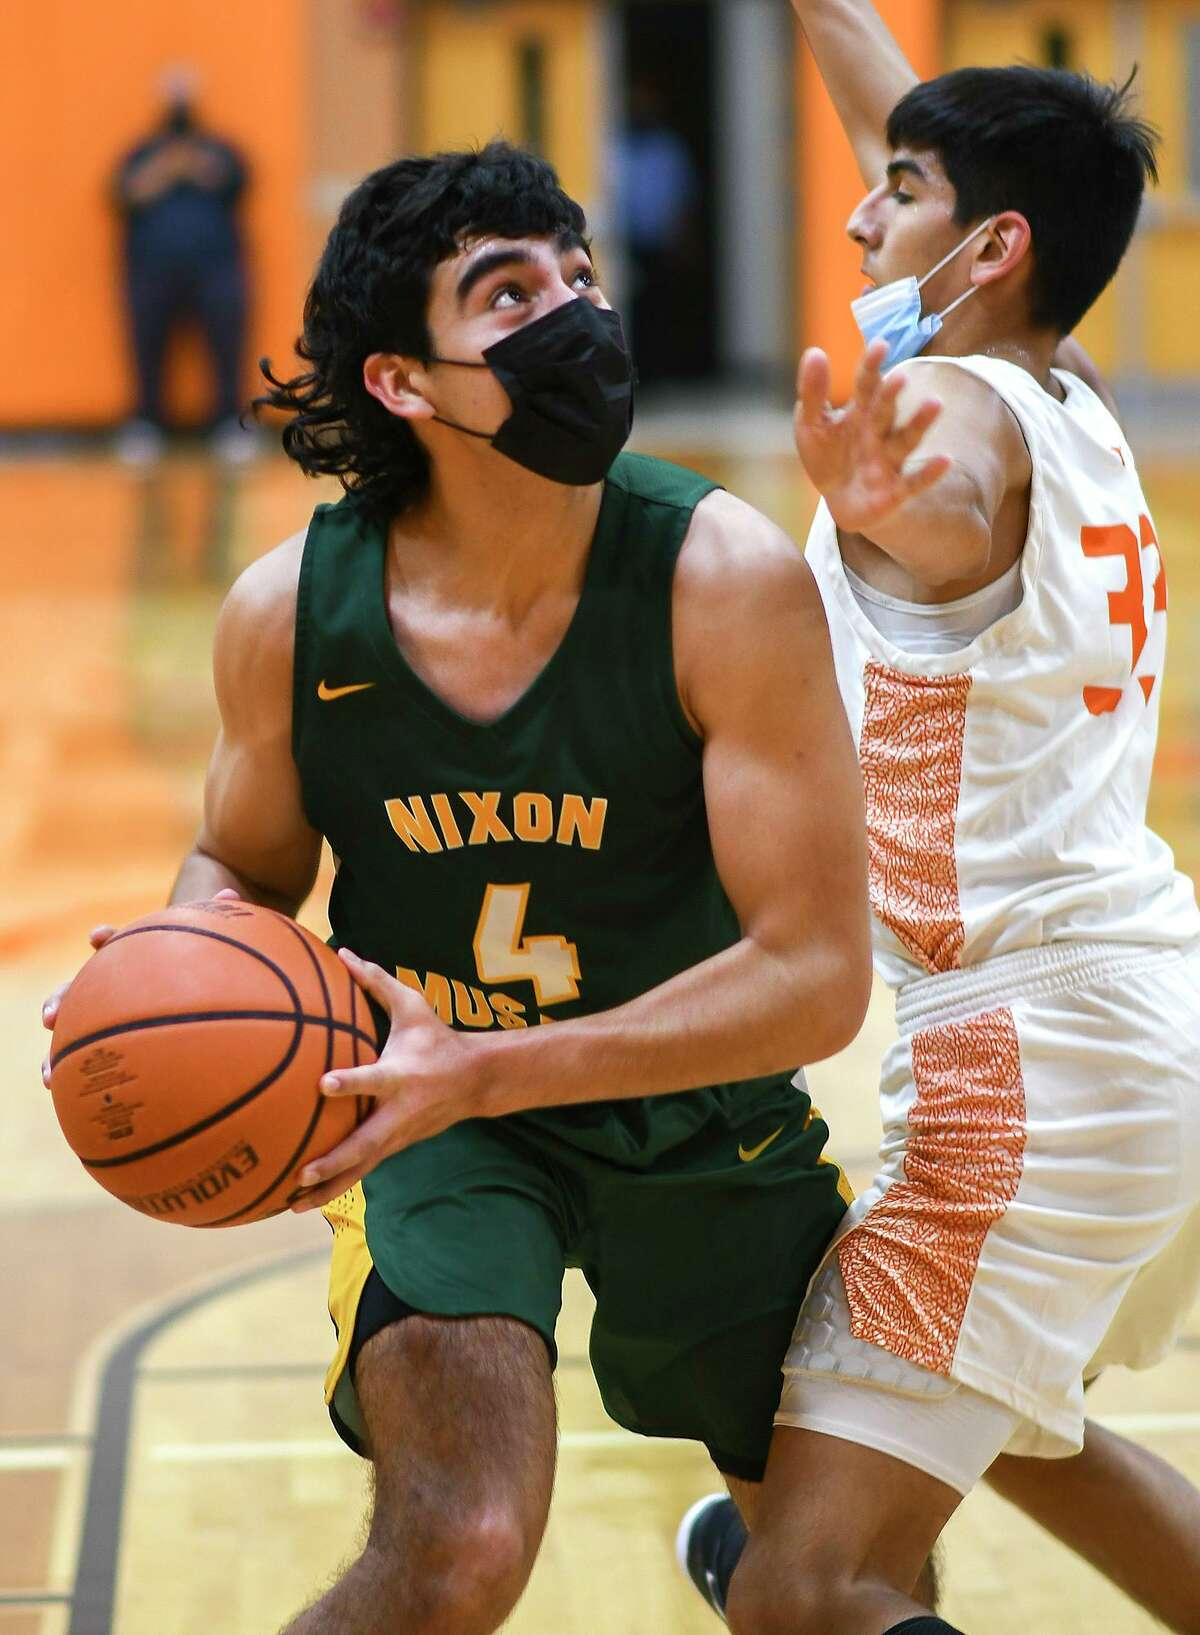 Juan Marines and the Nixon Mustangs will open the playoffs against No. 16 San Antonio O'Connor on Monday.